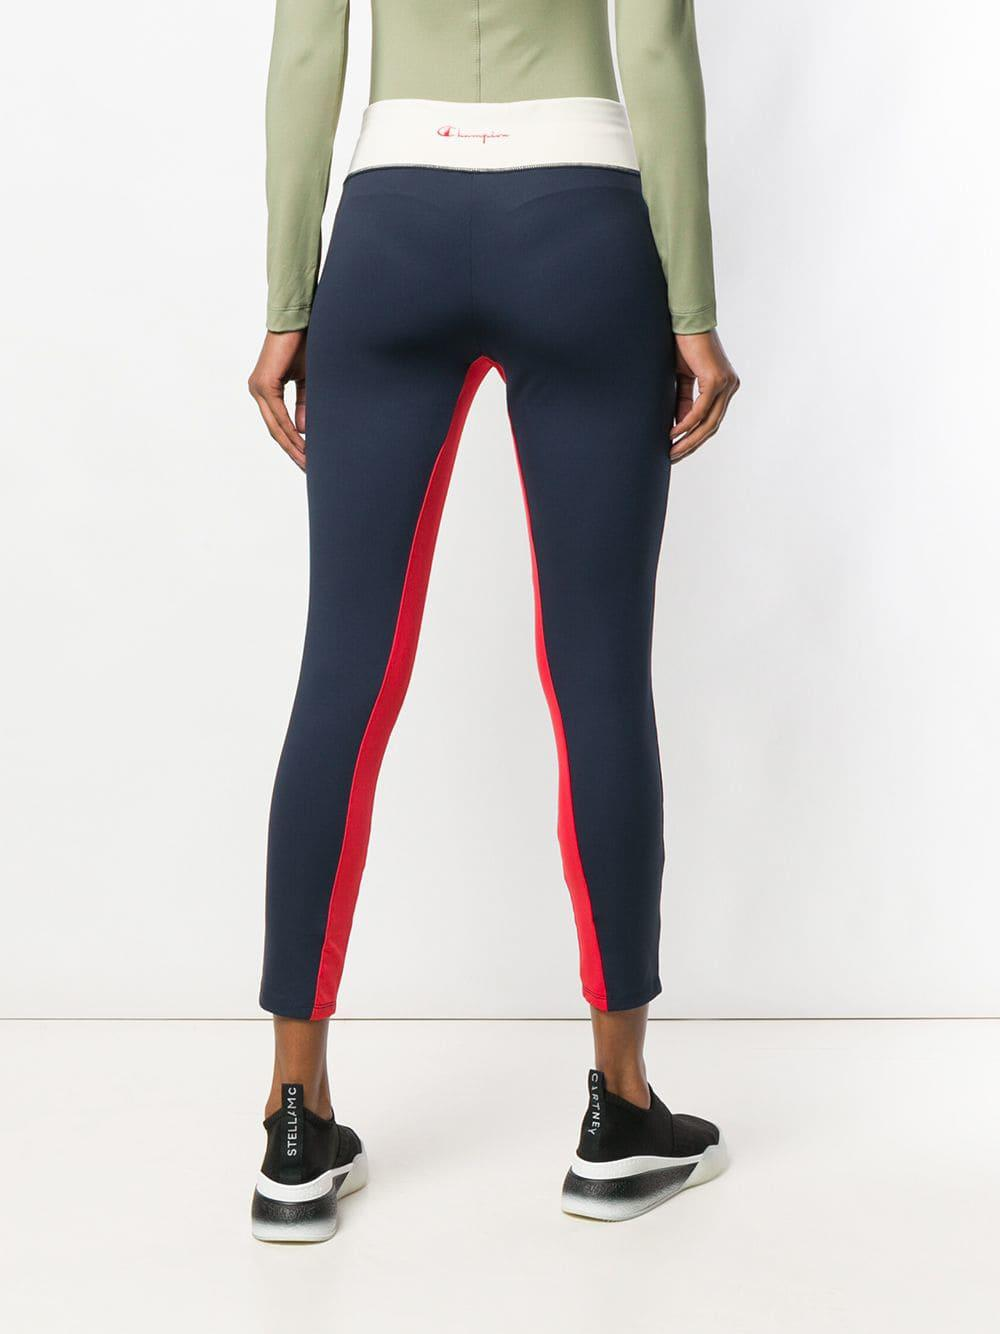 3229ad5bb40b8 Champion Cropped Sports leggings in Blue - Lyst